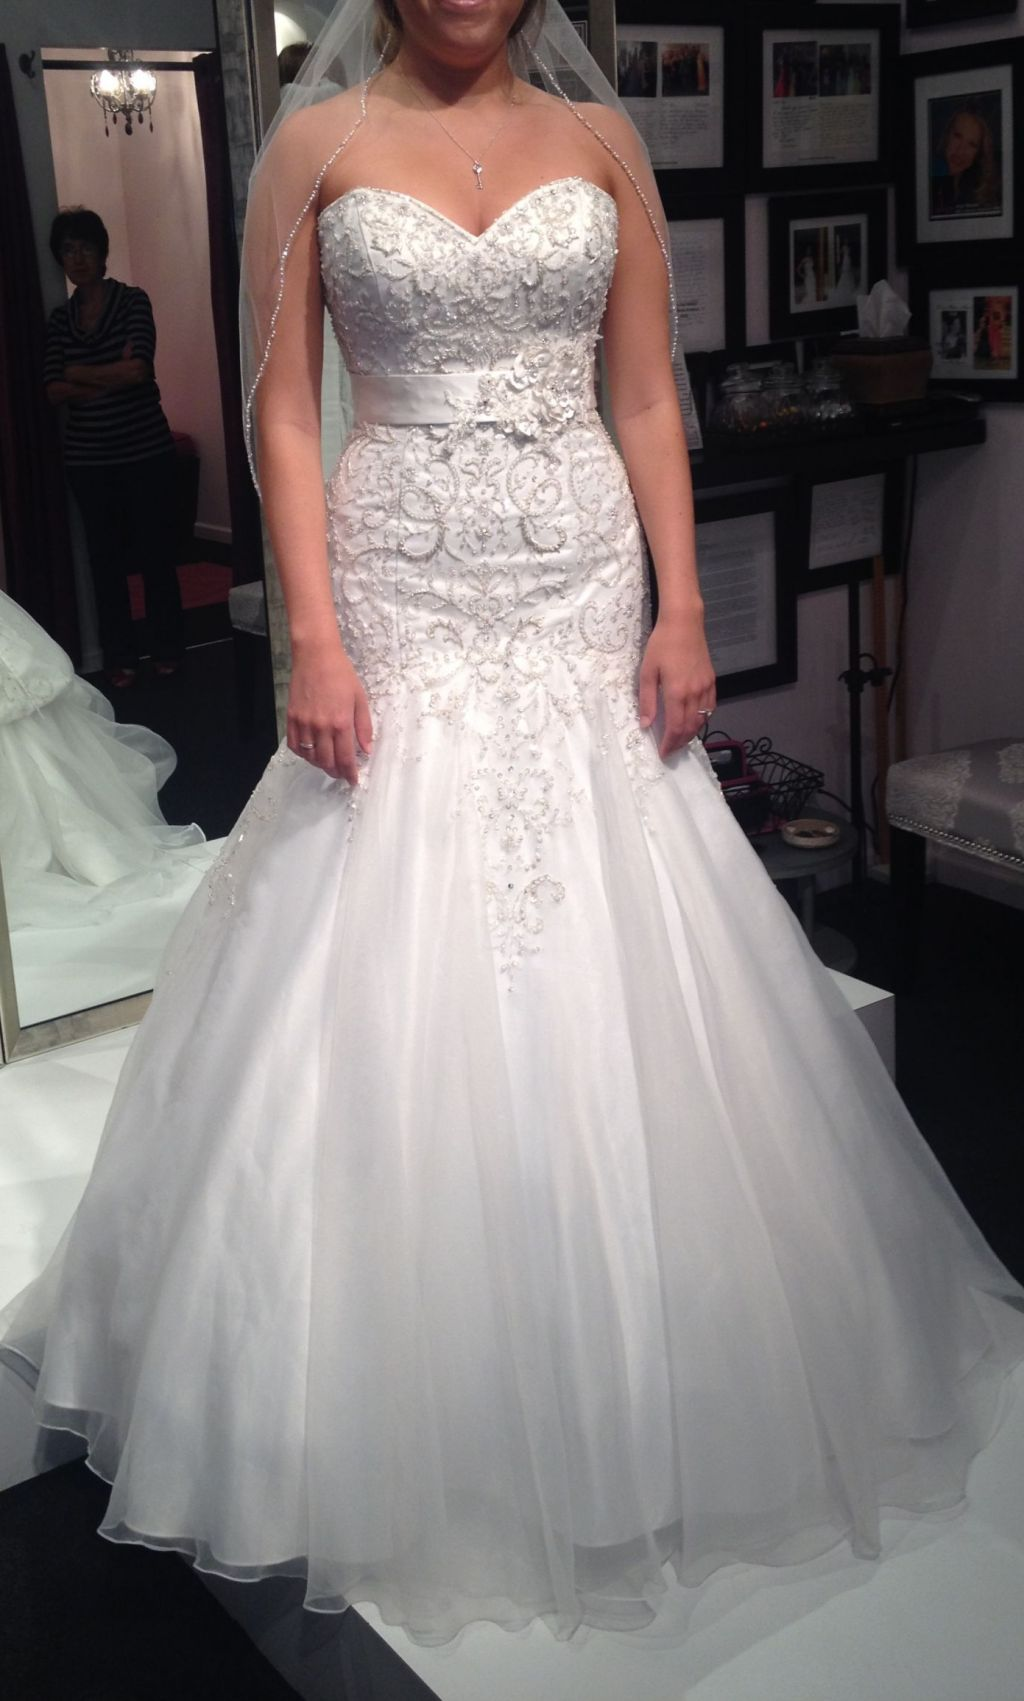 Other landa 873 from brizan couture in chicago 1 700 for Sample wedding dresses chicago